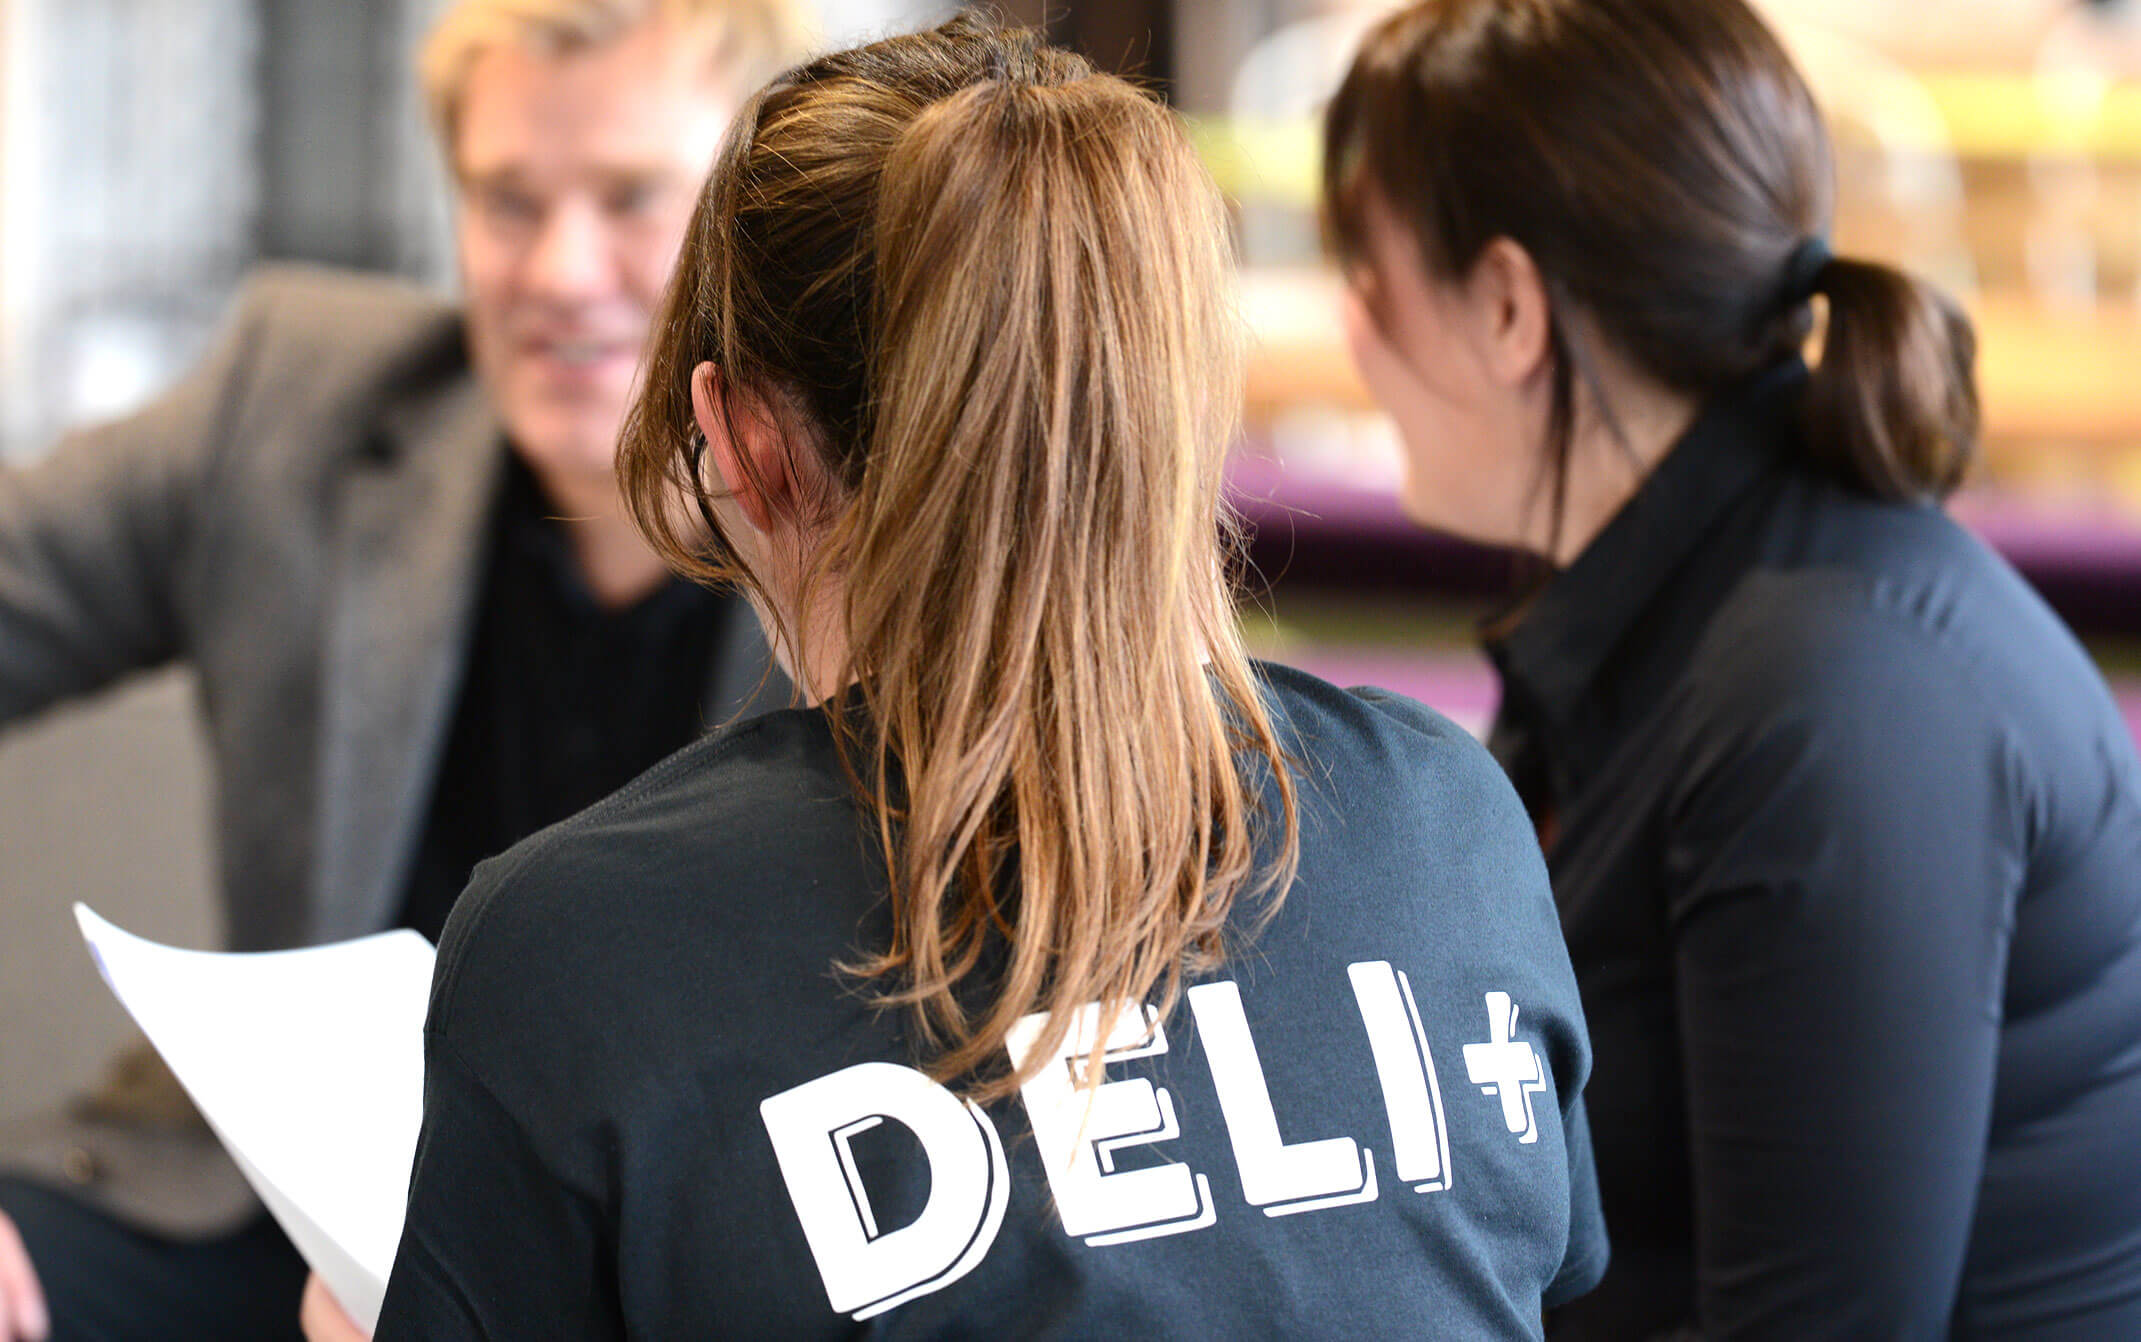 http://www.deli-plus.co.uk/wp-content/uploads/2017/04/meeting3.jpg